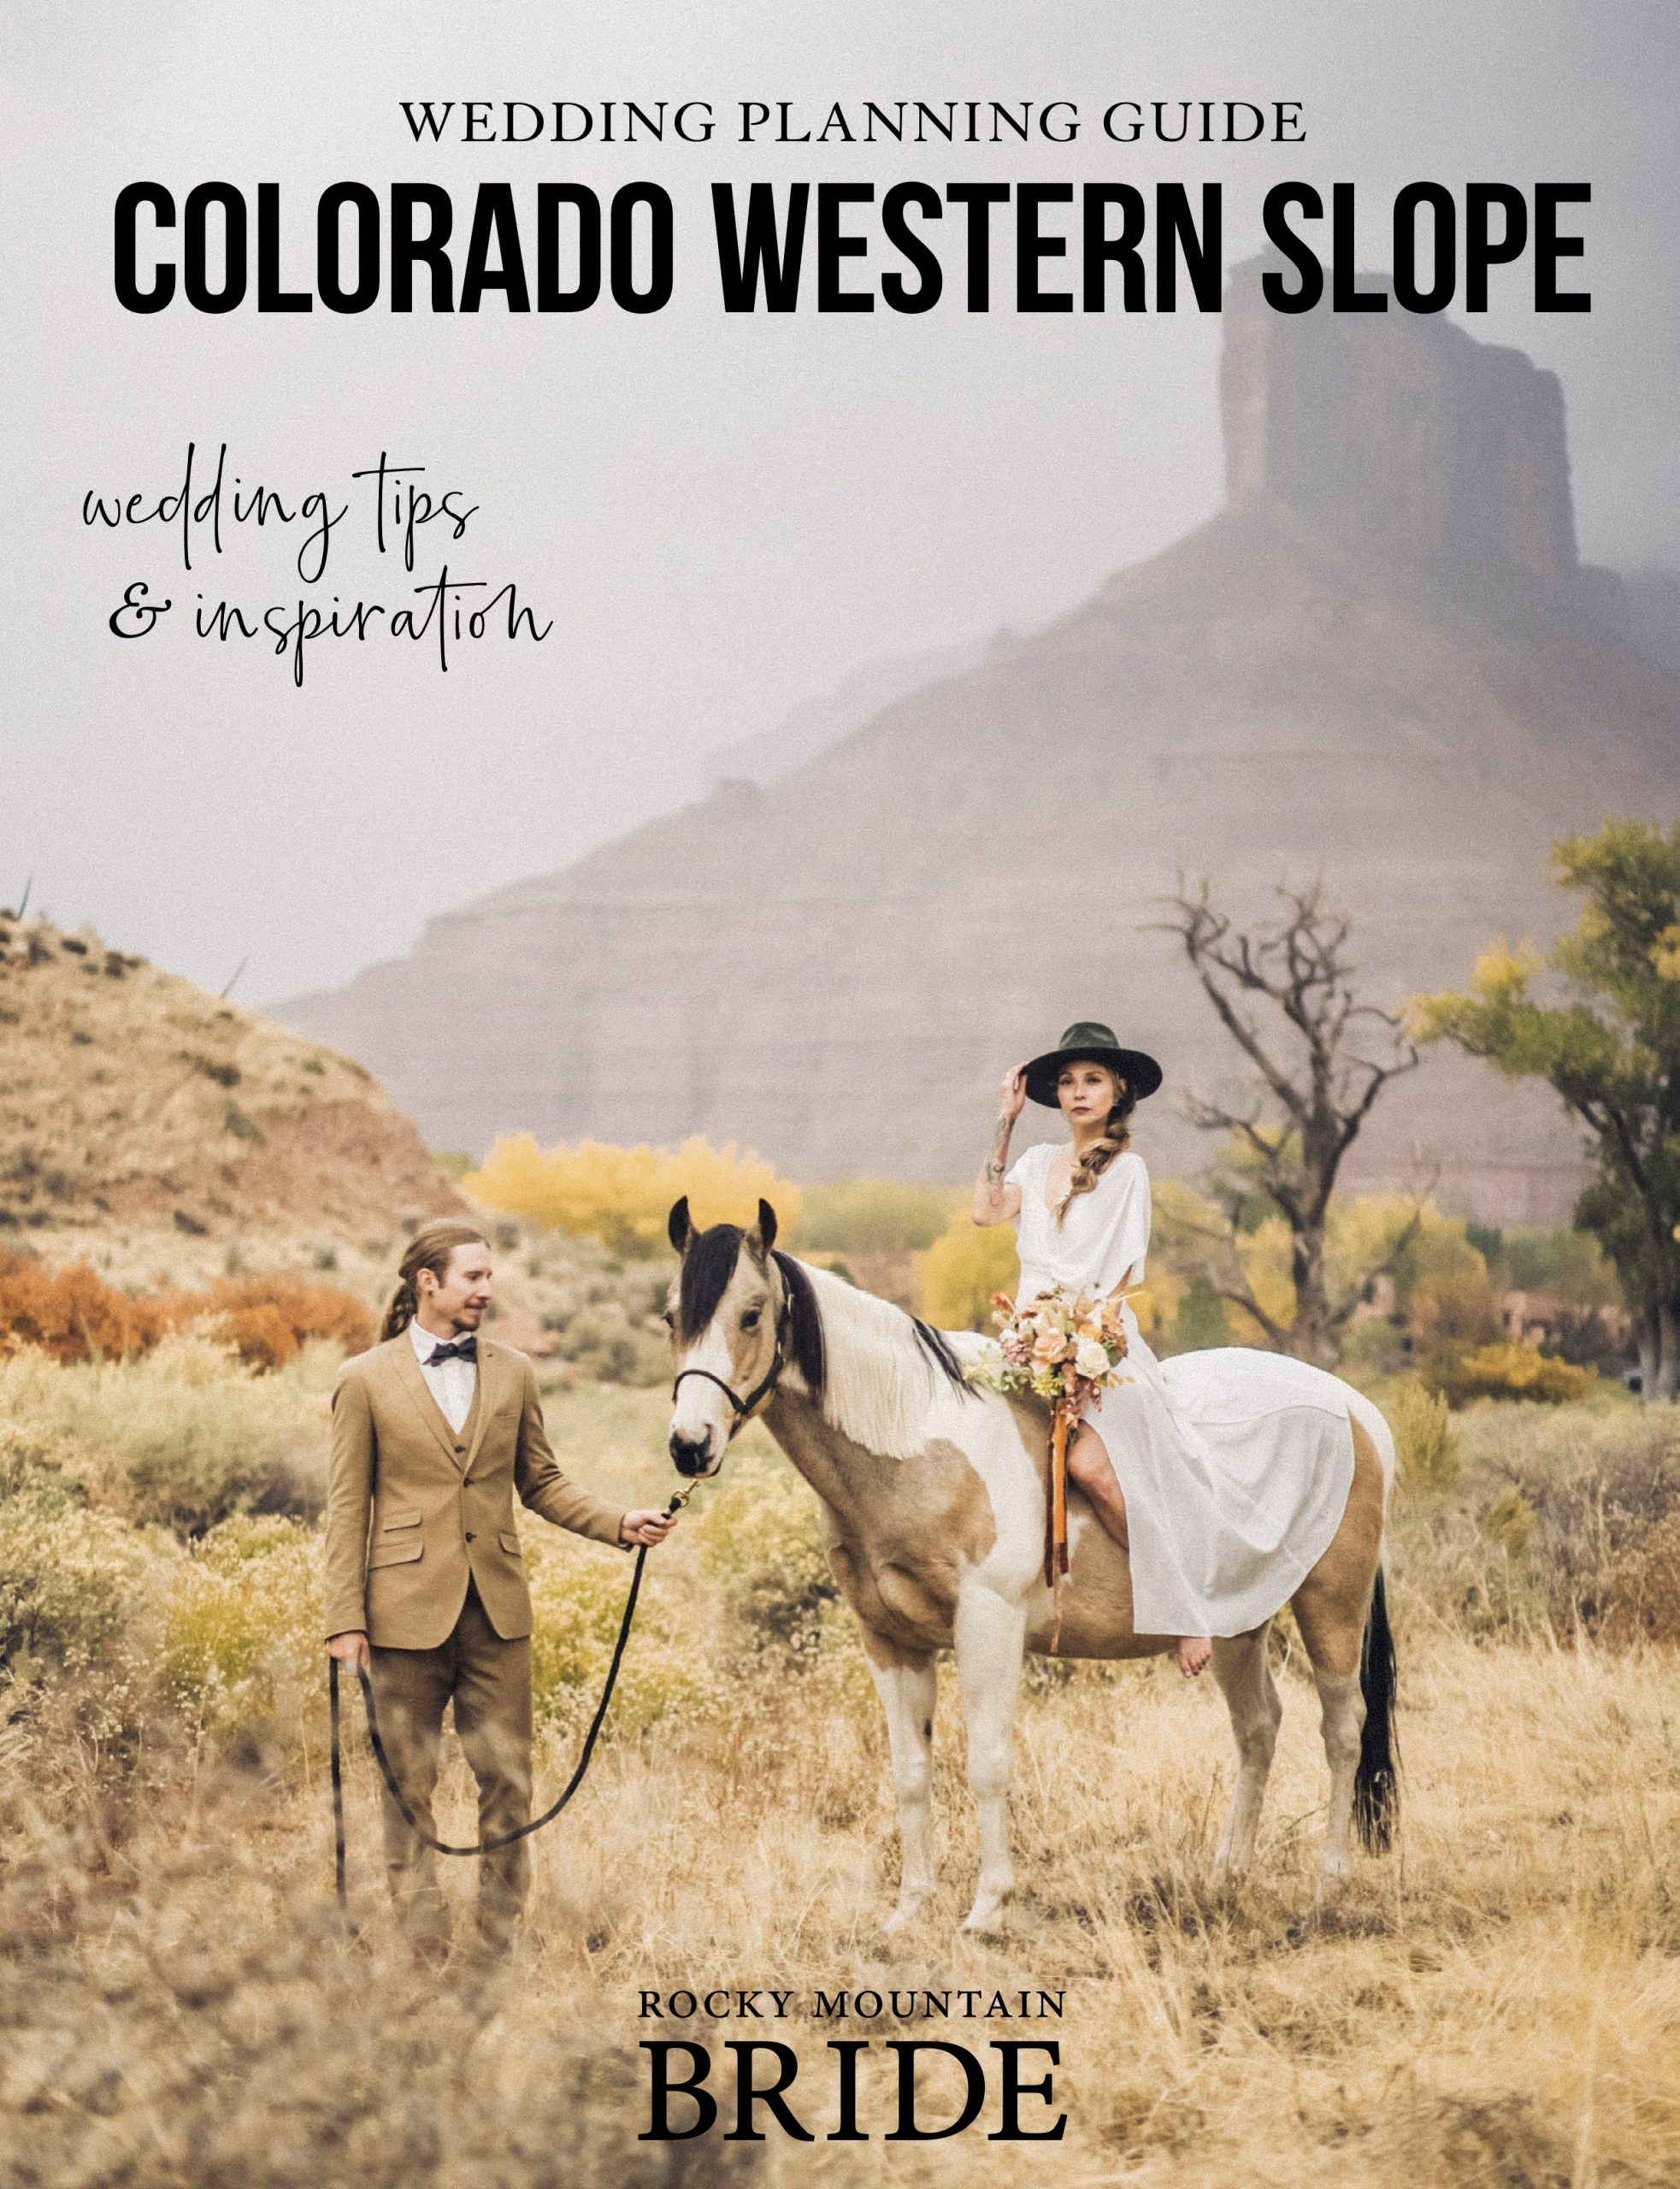 Colorado Western Slope